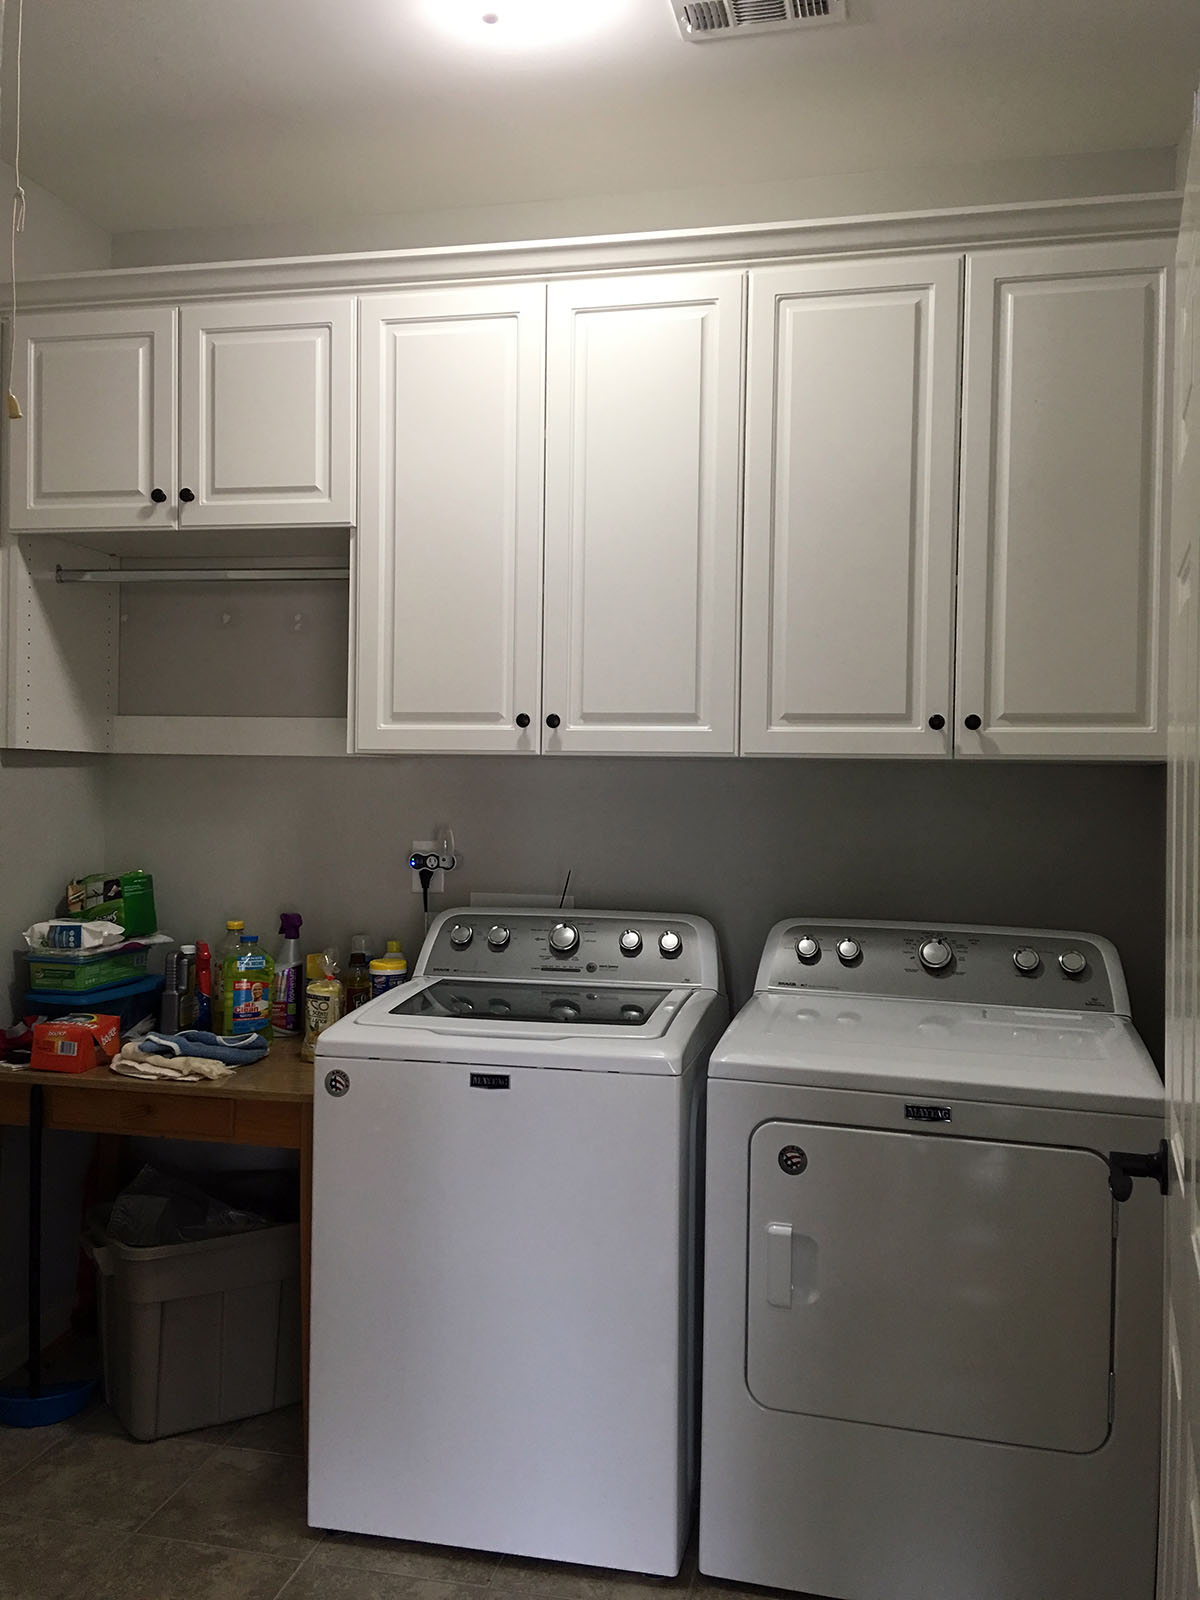 laundry room storage with wardrobe rod